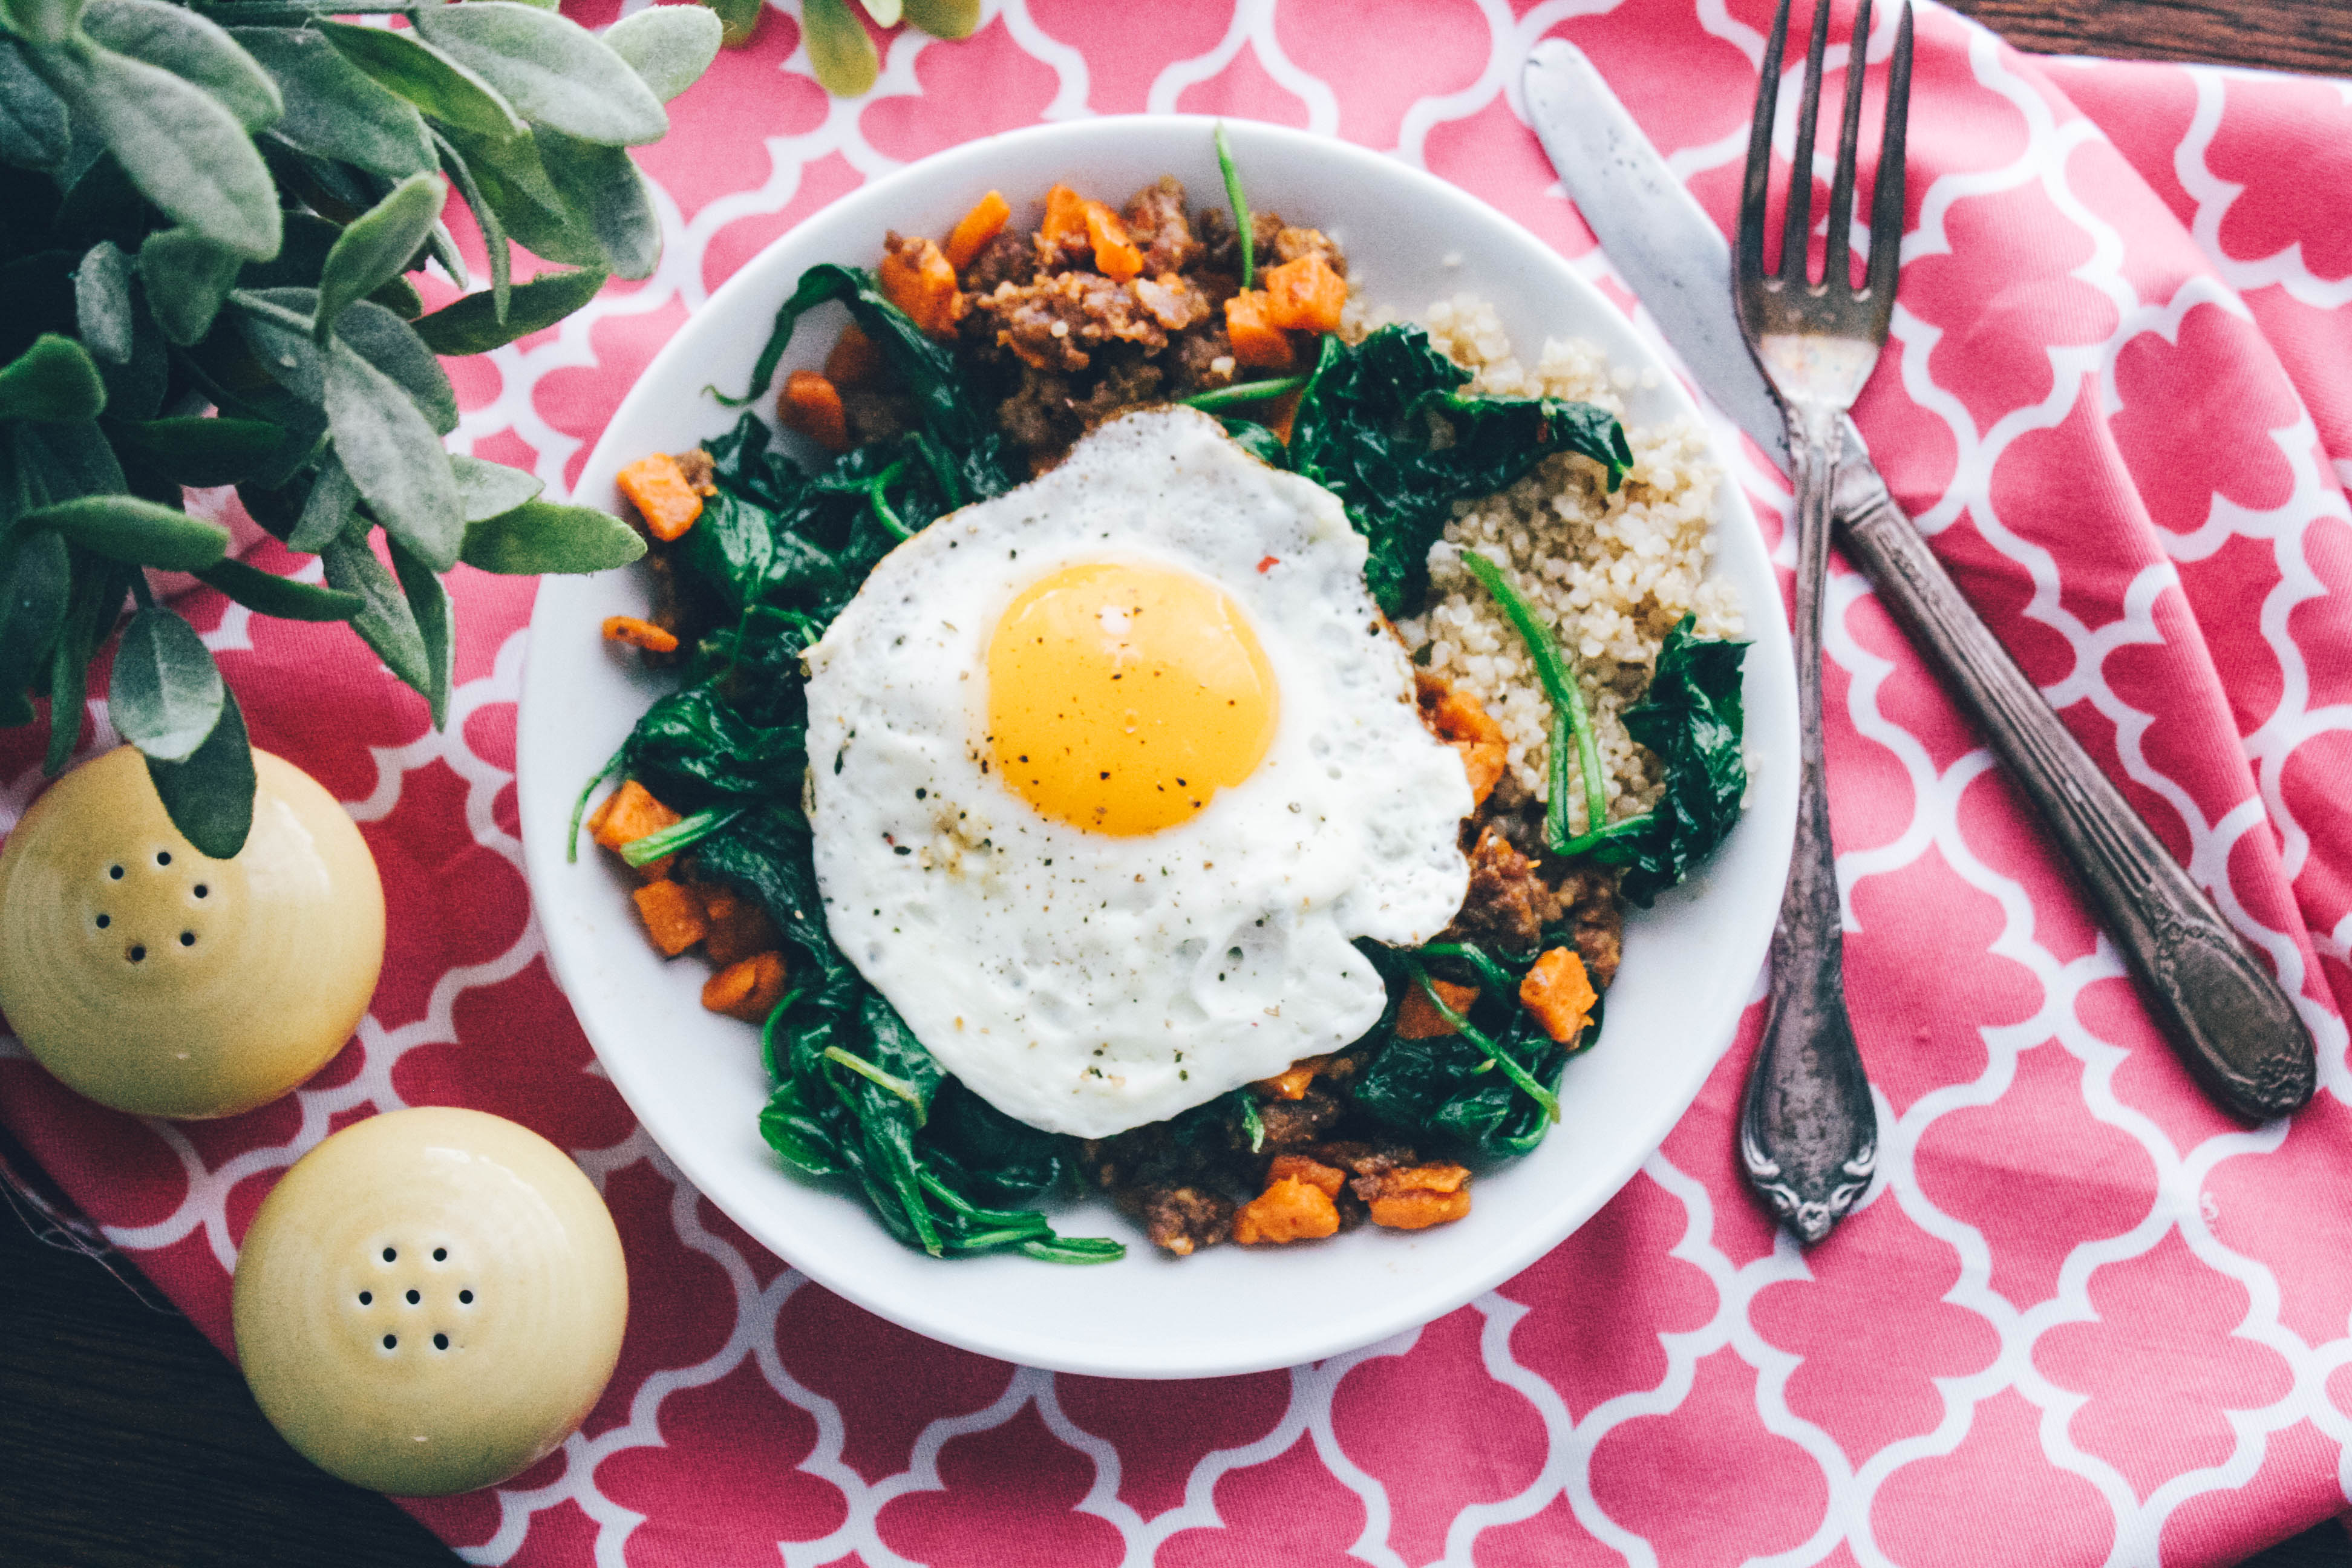 Sausage, Sweet Potato & Spinach Quinoa Bowls with Egg are a delightful dish for any meal. Make these Sausage, Sweet Potato & Spinach Quinoa Bowls with Egg soon!